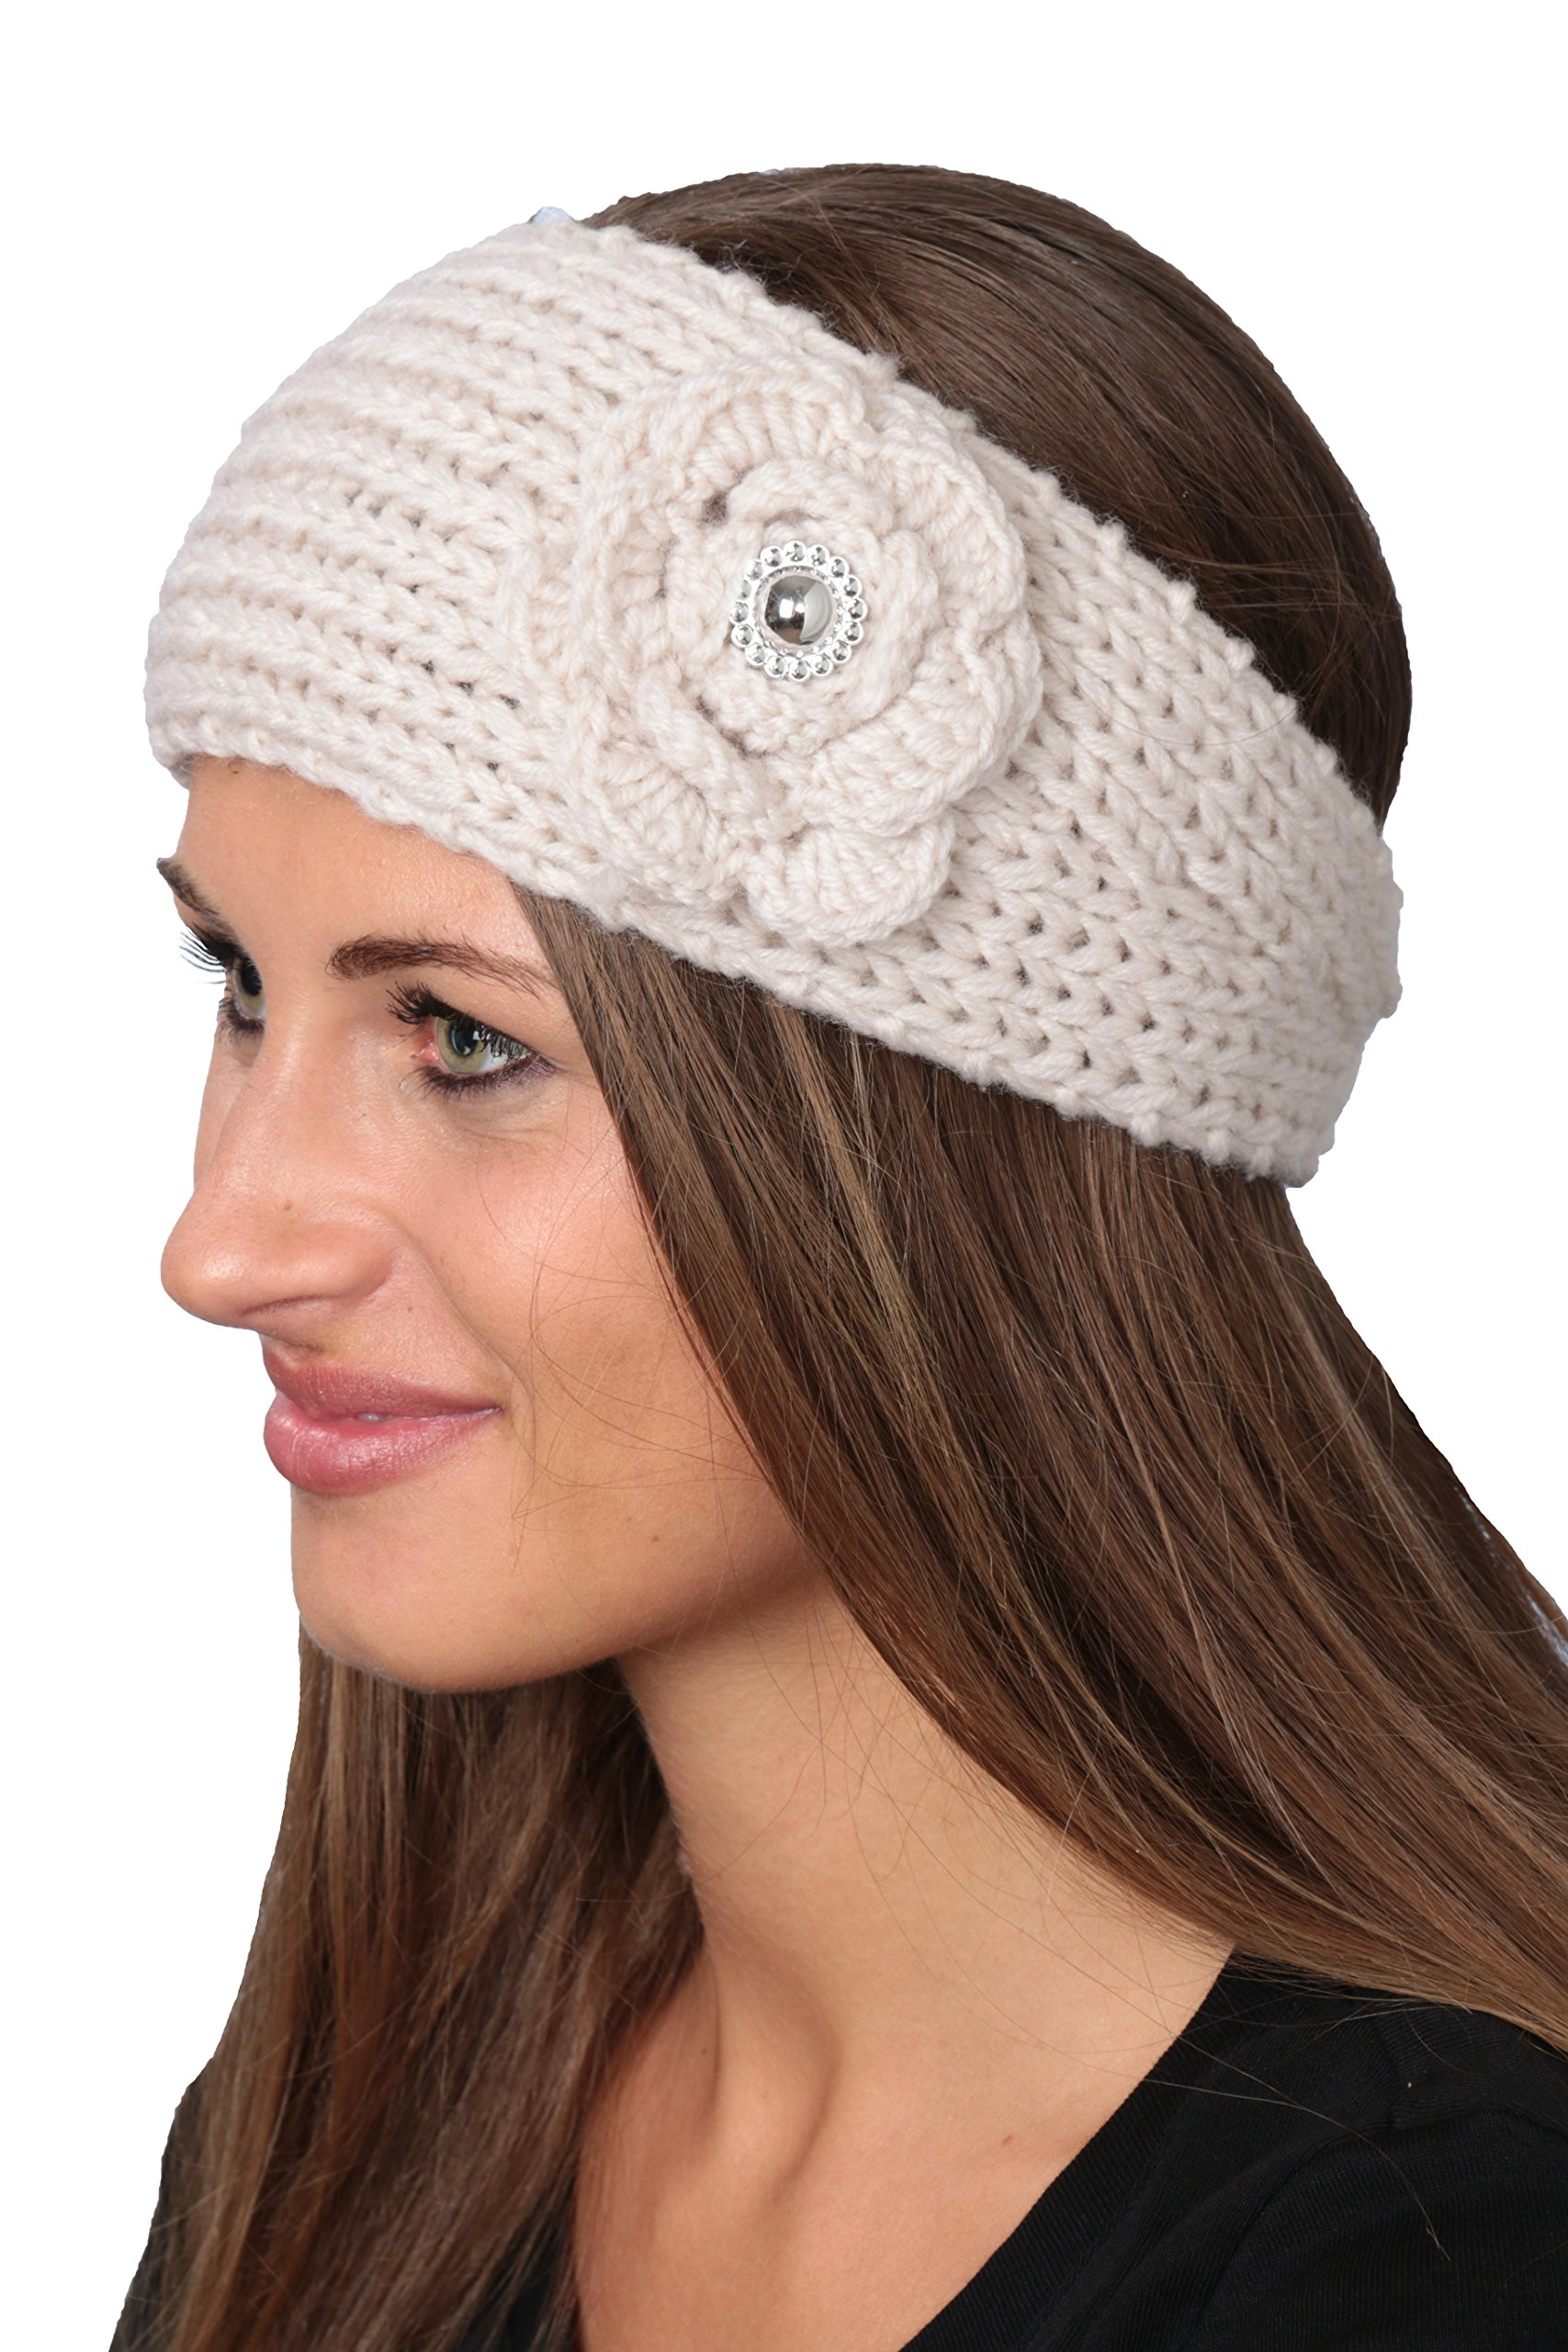 Active Club Winter Fashion Headbands-assorted Styles 2 Pack (Grey & White)